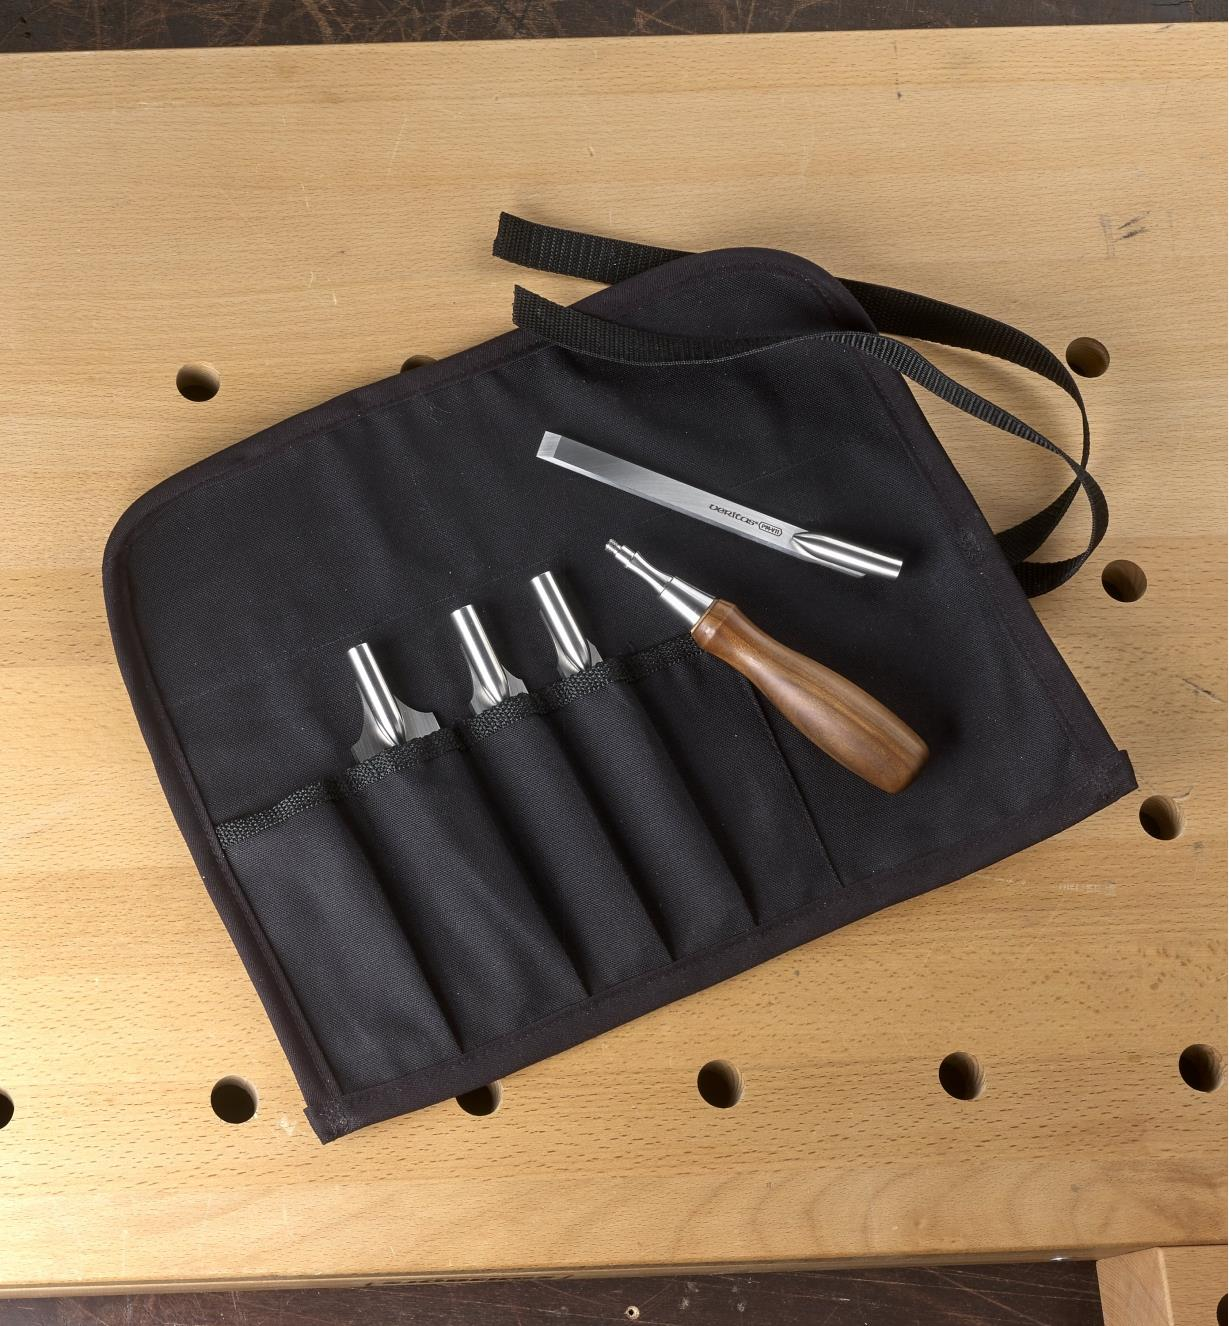 Veritas Flushing Chisel Roll lying open with chisels in the pockets